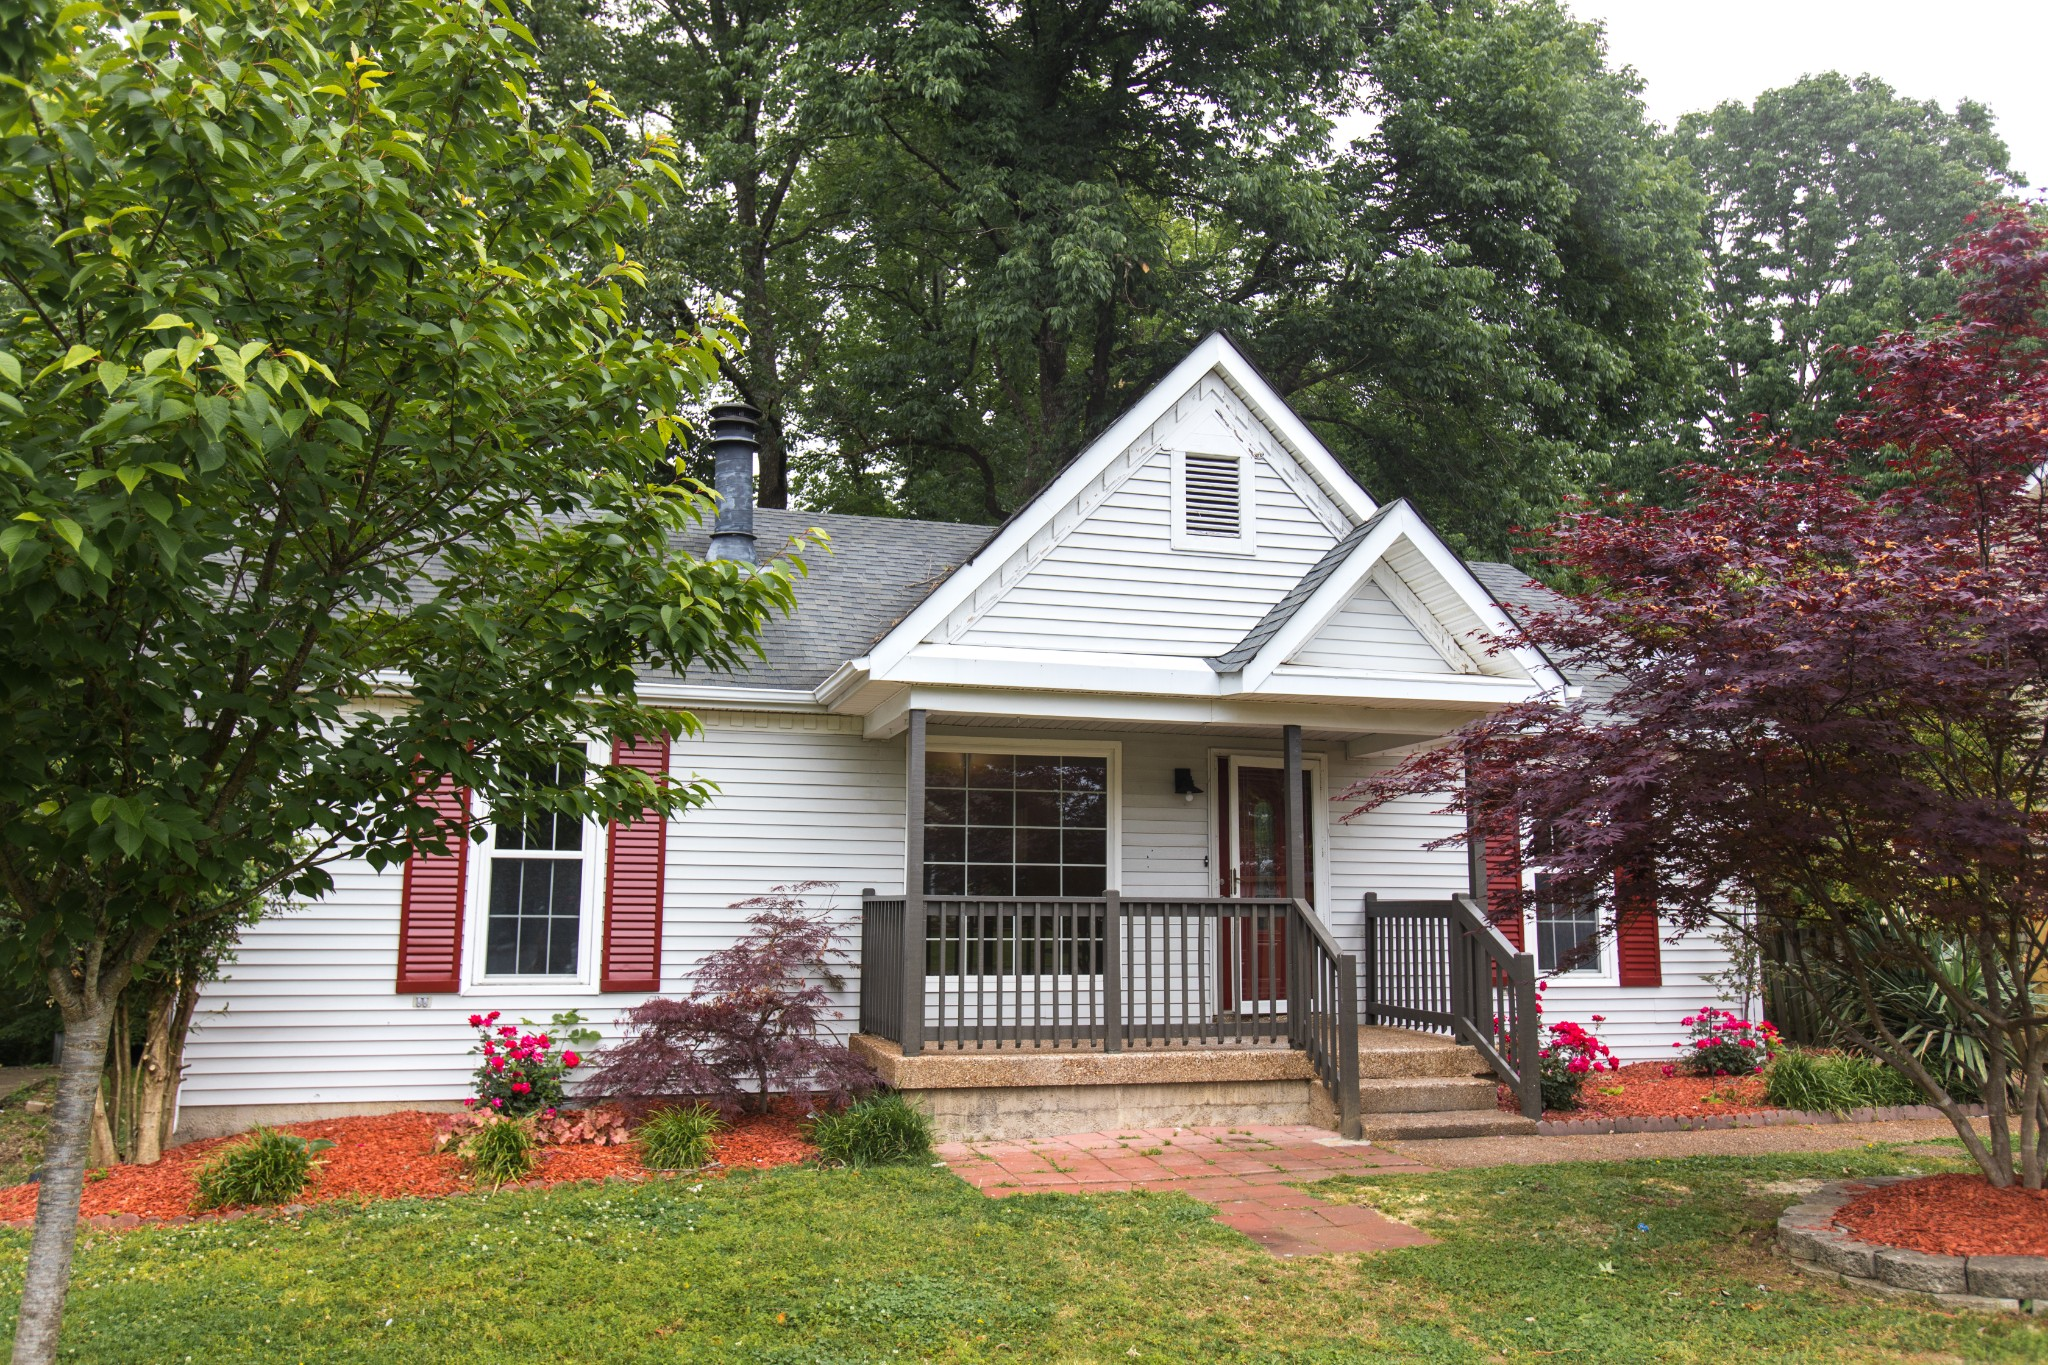 1268 Jacksons Hill Rd, Hermitage, Tennessee